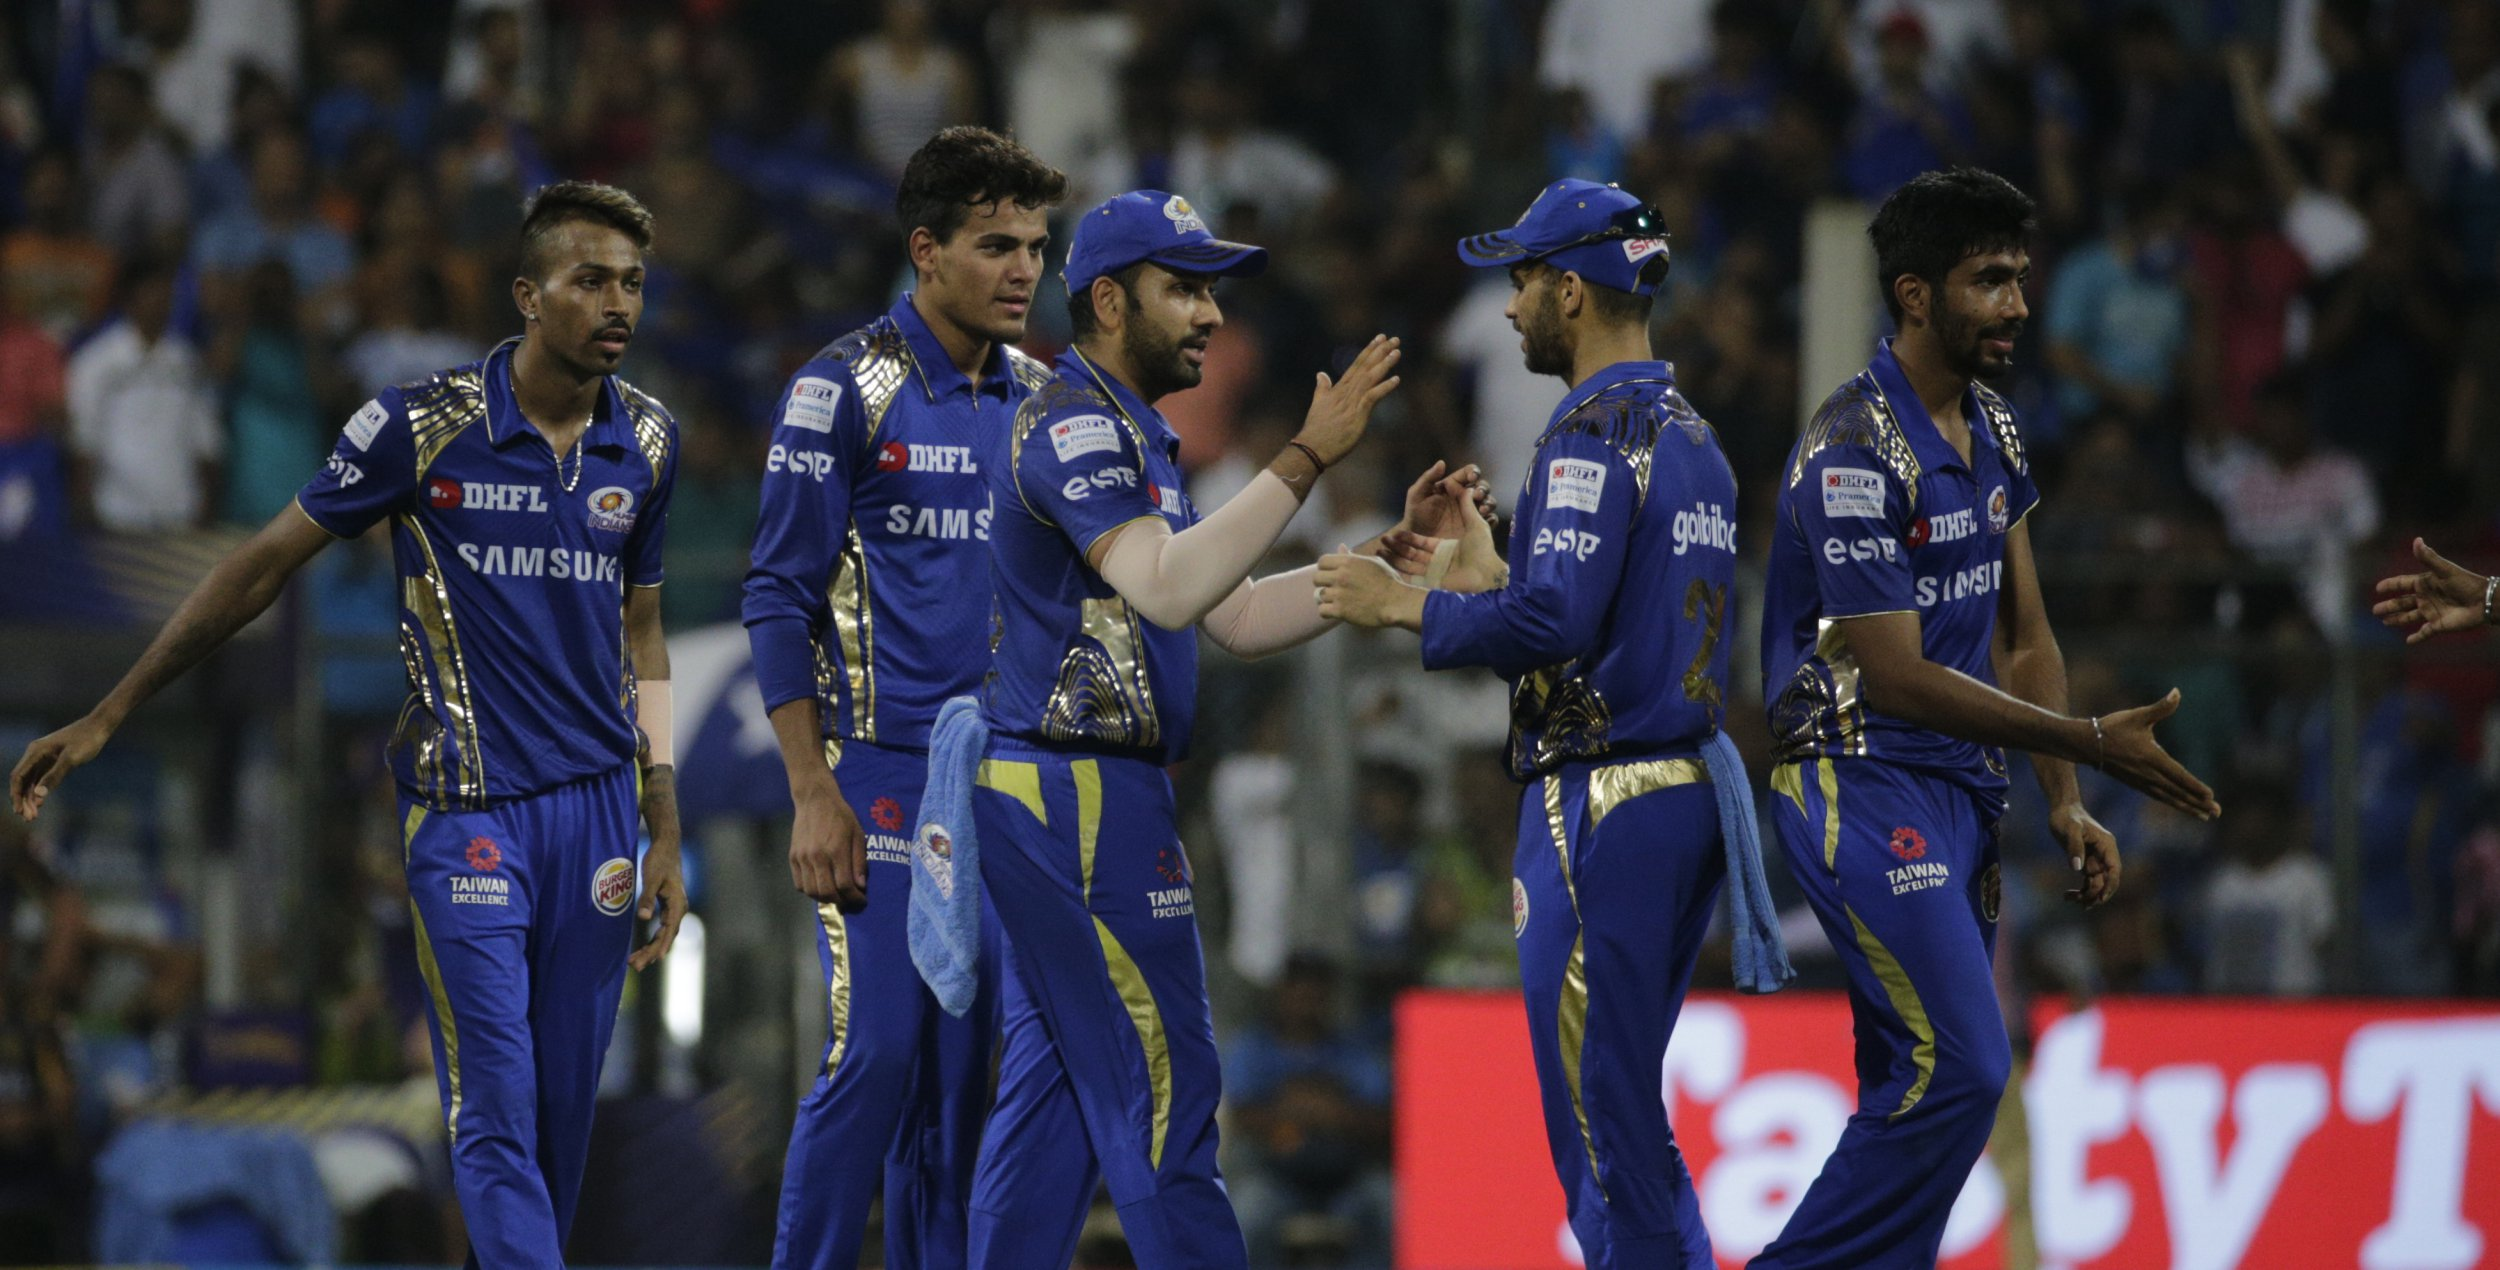 Kolkata Knight Riders v Mumbai Indians betting preview: IPL holders beginning to look like the real deal